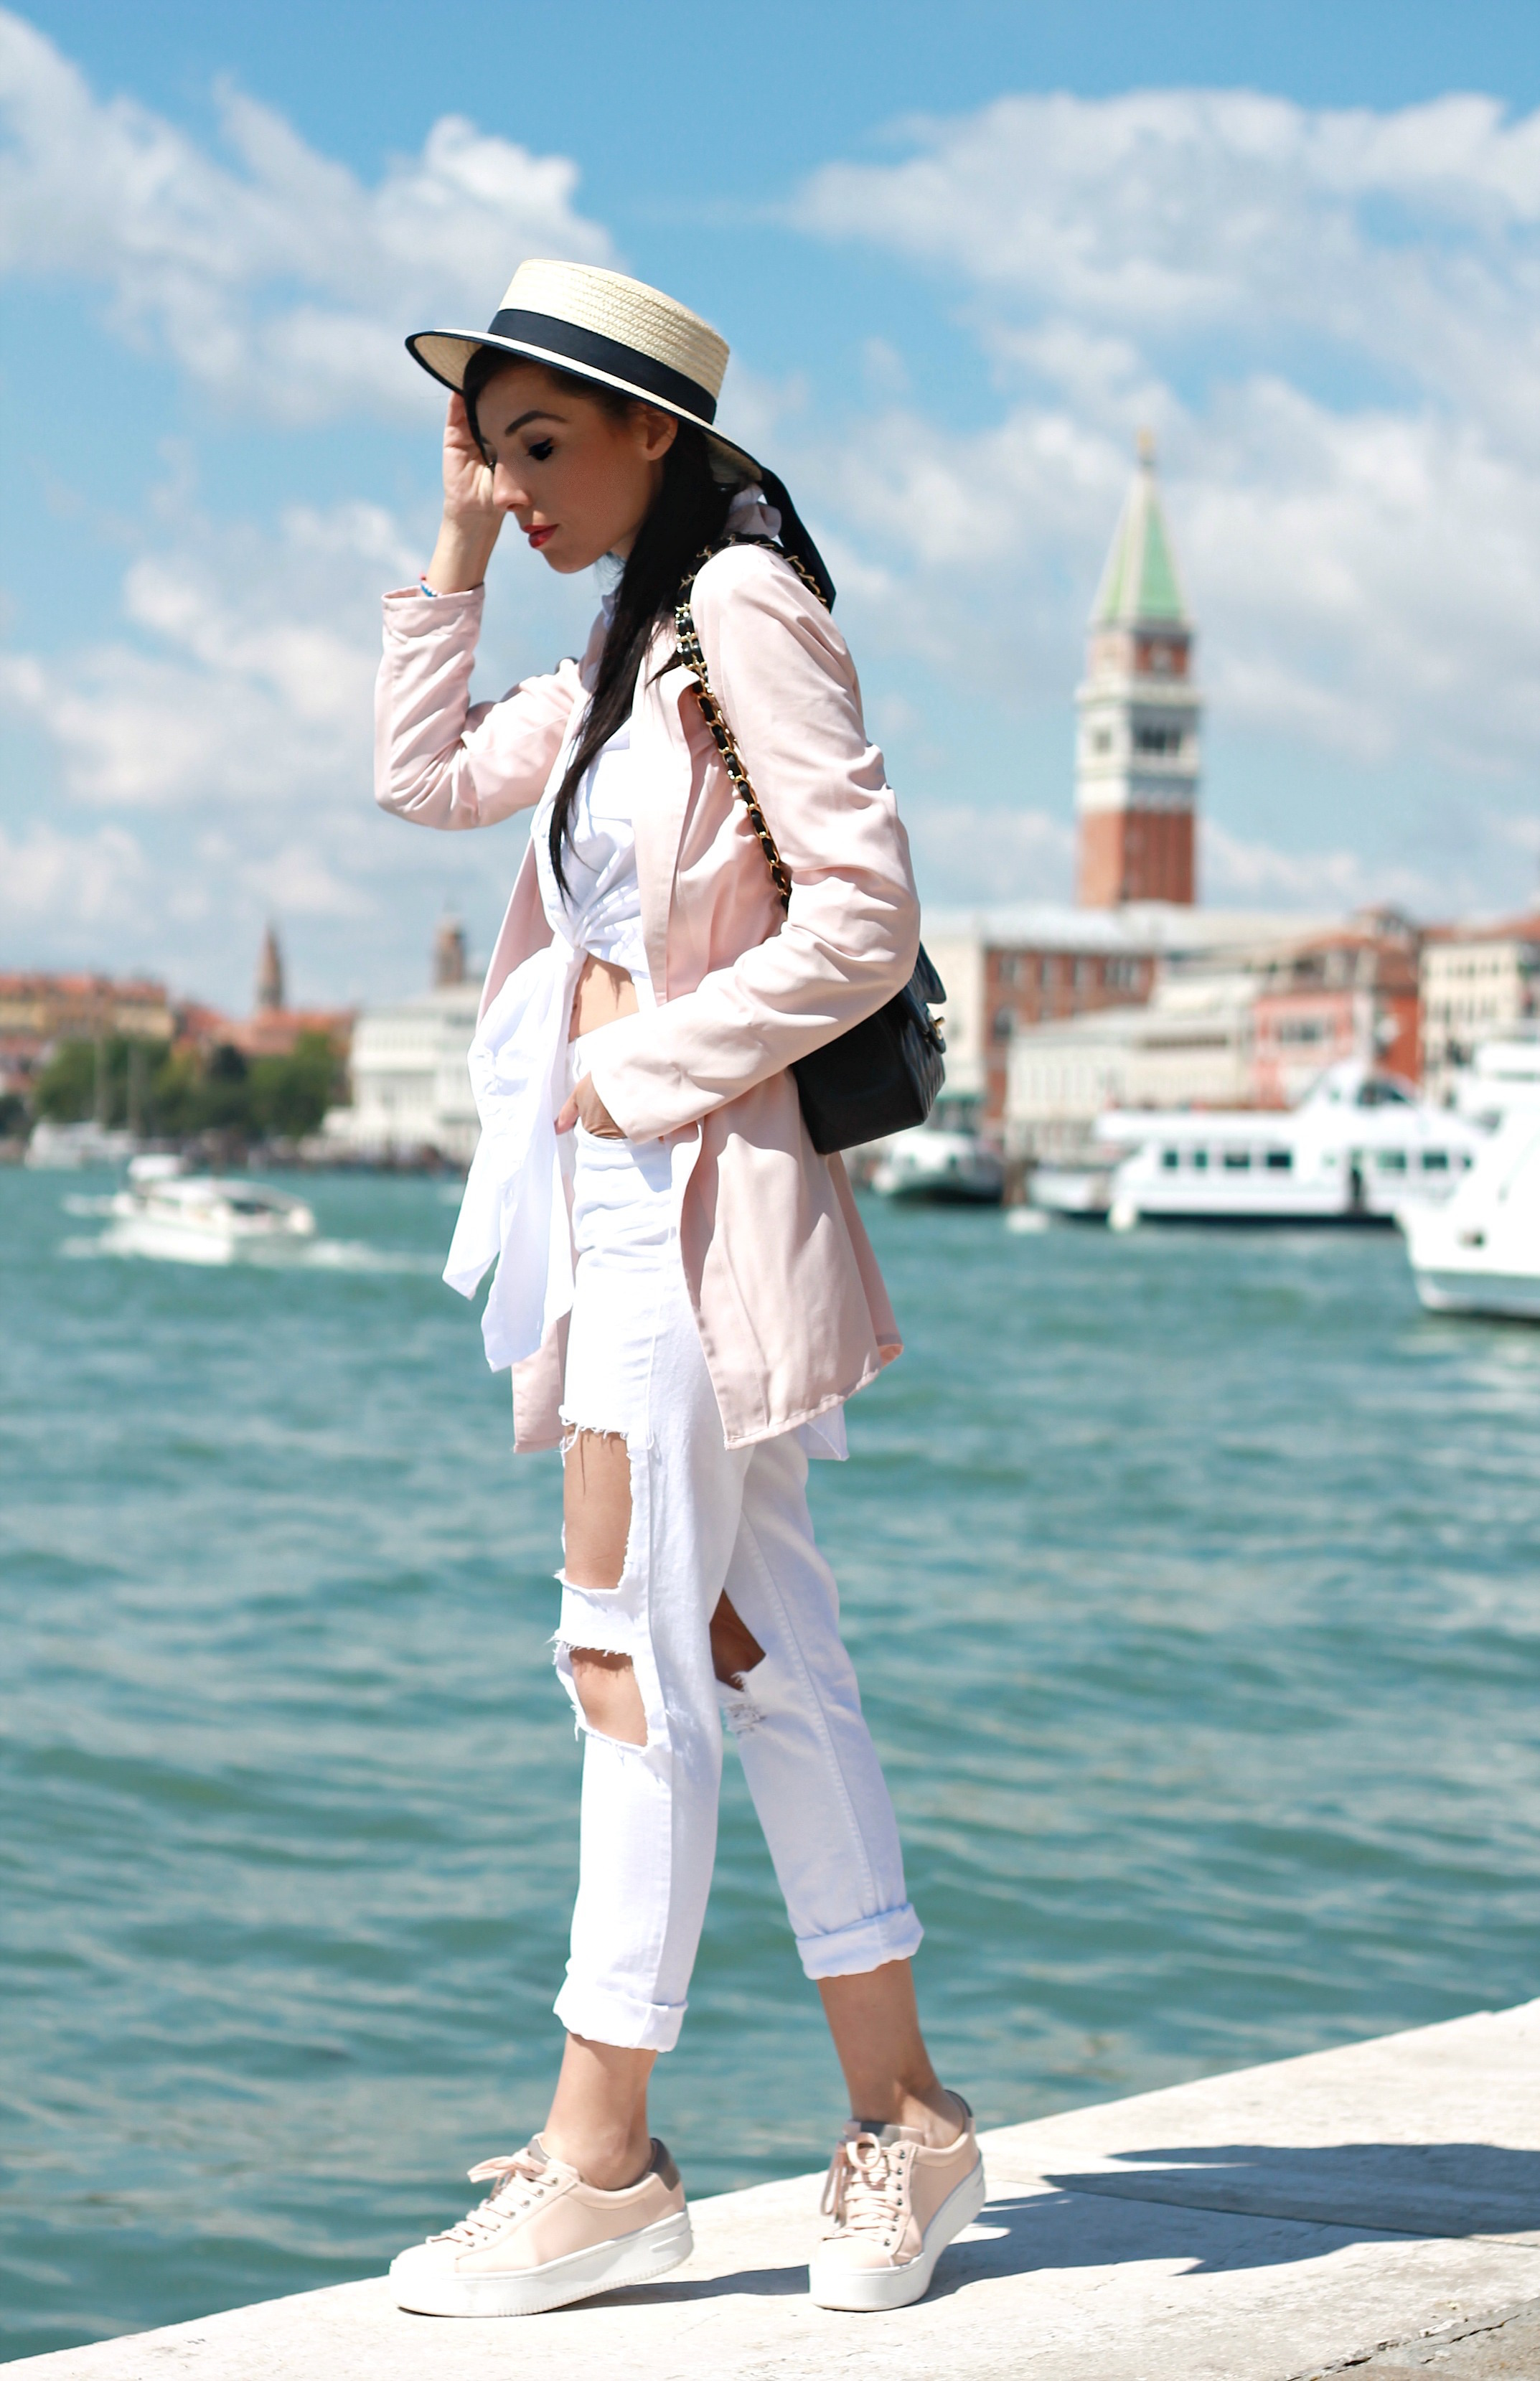 che cosa succede oggi, theladycracy.it, elisa bellino, fashion blogger italiane, fashion blogger famose, web influencer italiane, fashion blogger outfit summer 2016, outfit primavera estate 2016, jeans strappati stradivarius, blazer rosa stradivarius, borsa chanel 2.55 timeless grande autentica, fashion blog italia, fashion bloggers outfit 2016, sneakers stradivarius pink nude, elisa bellino, stylish blogger, sporty chic look idea blogger,